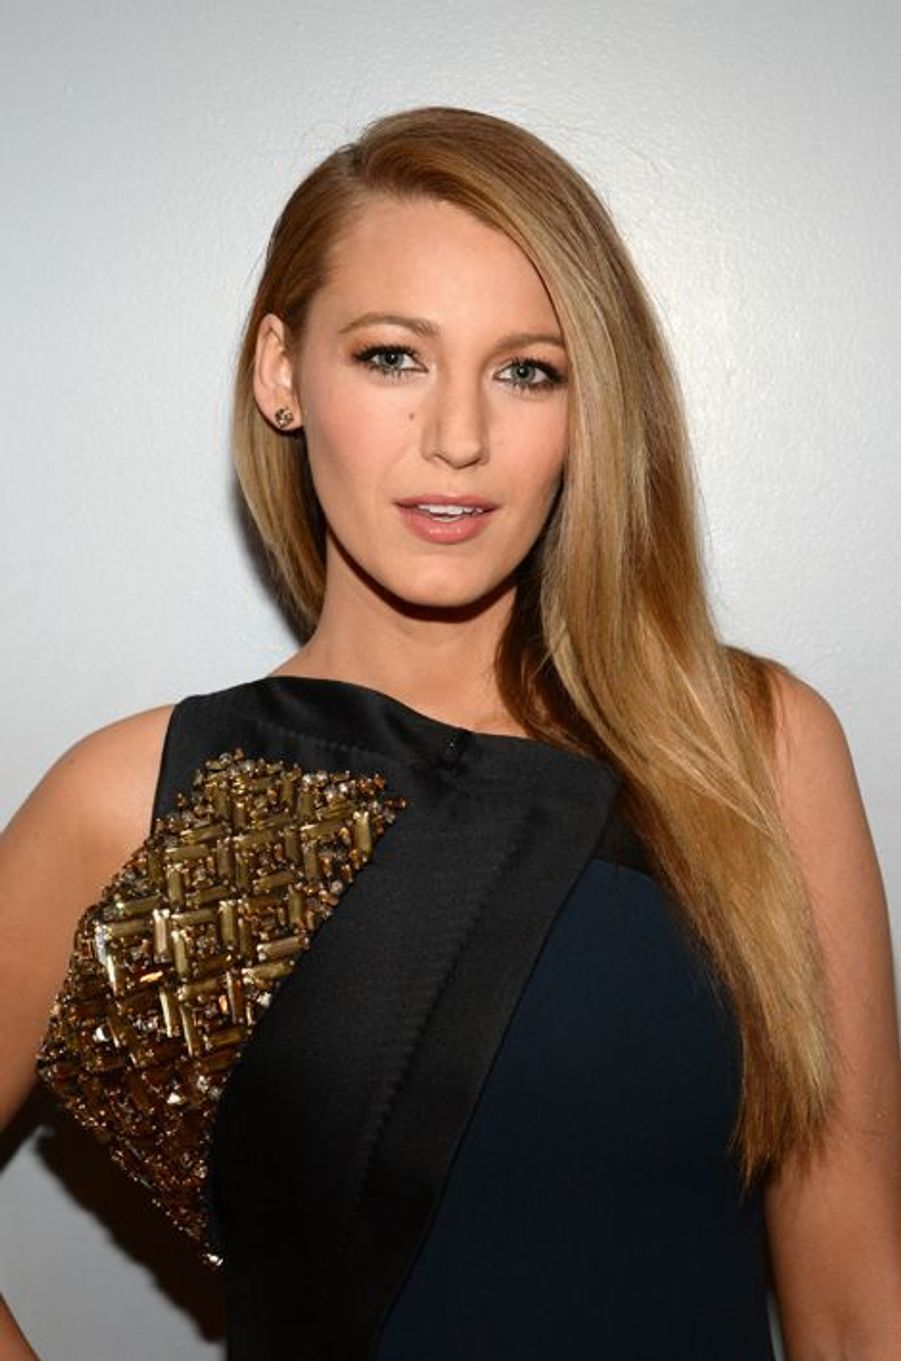 Blake Lively en robe Antonio Berardi, invitée sur l'émission de Jimmy Fallon le 21 avril